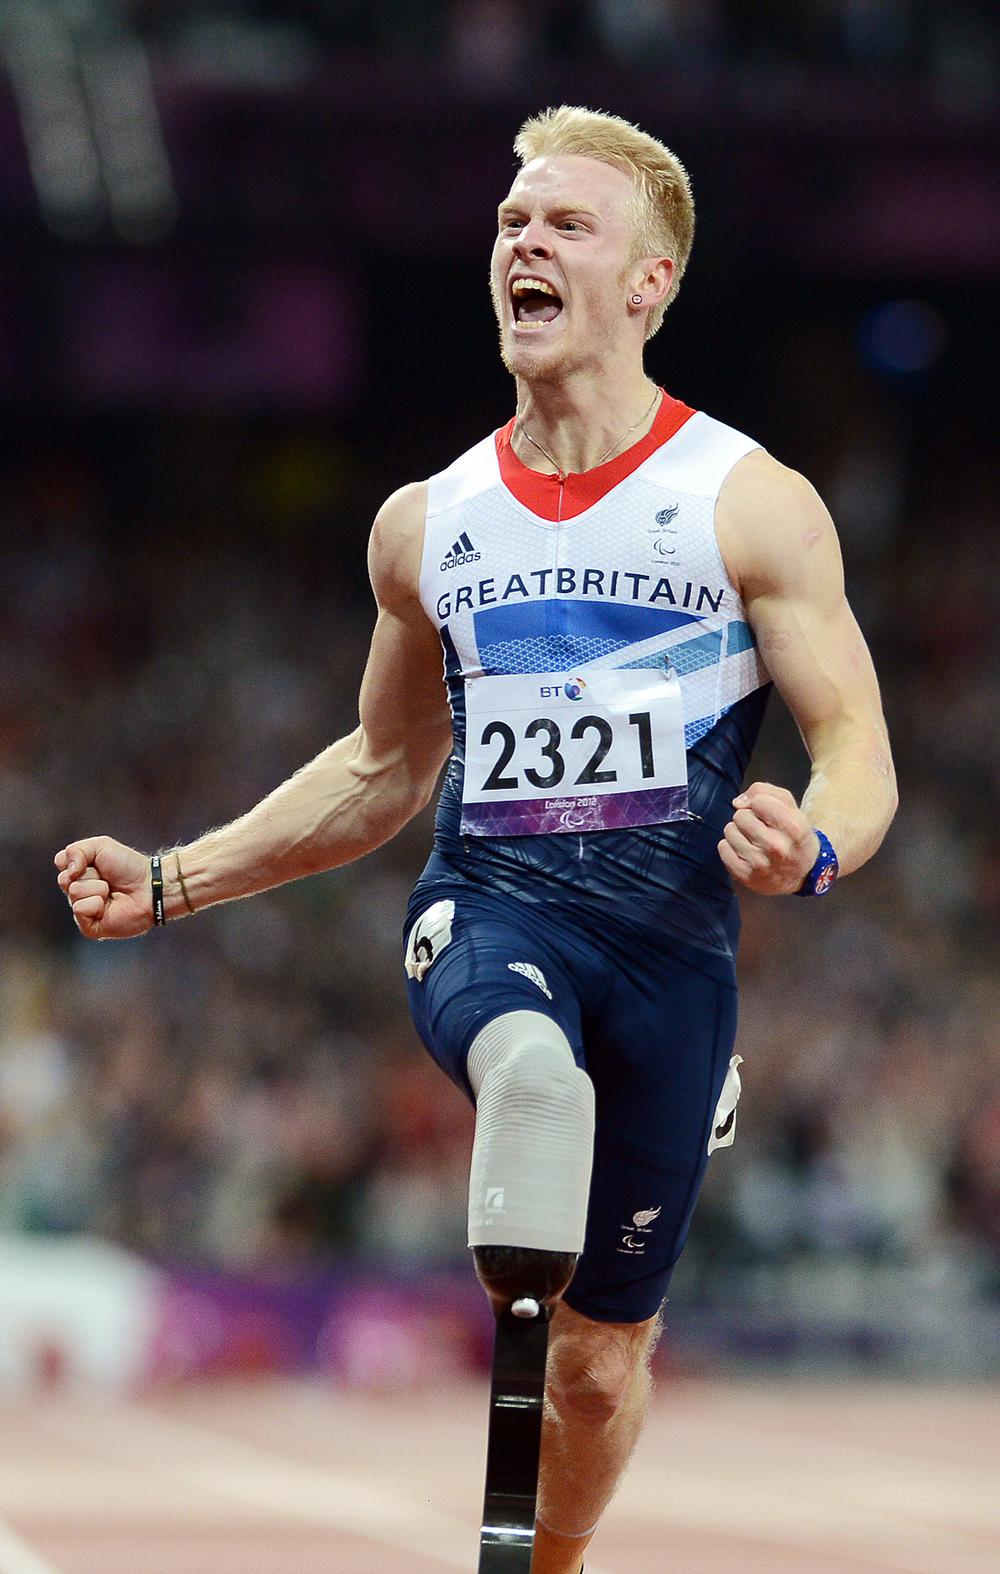 Jonnie Peacock will return to Paralympic action at Rio this month to defend his 100m T44 title